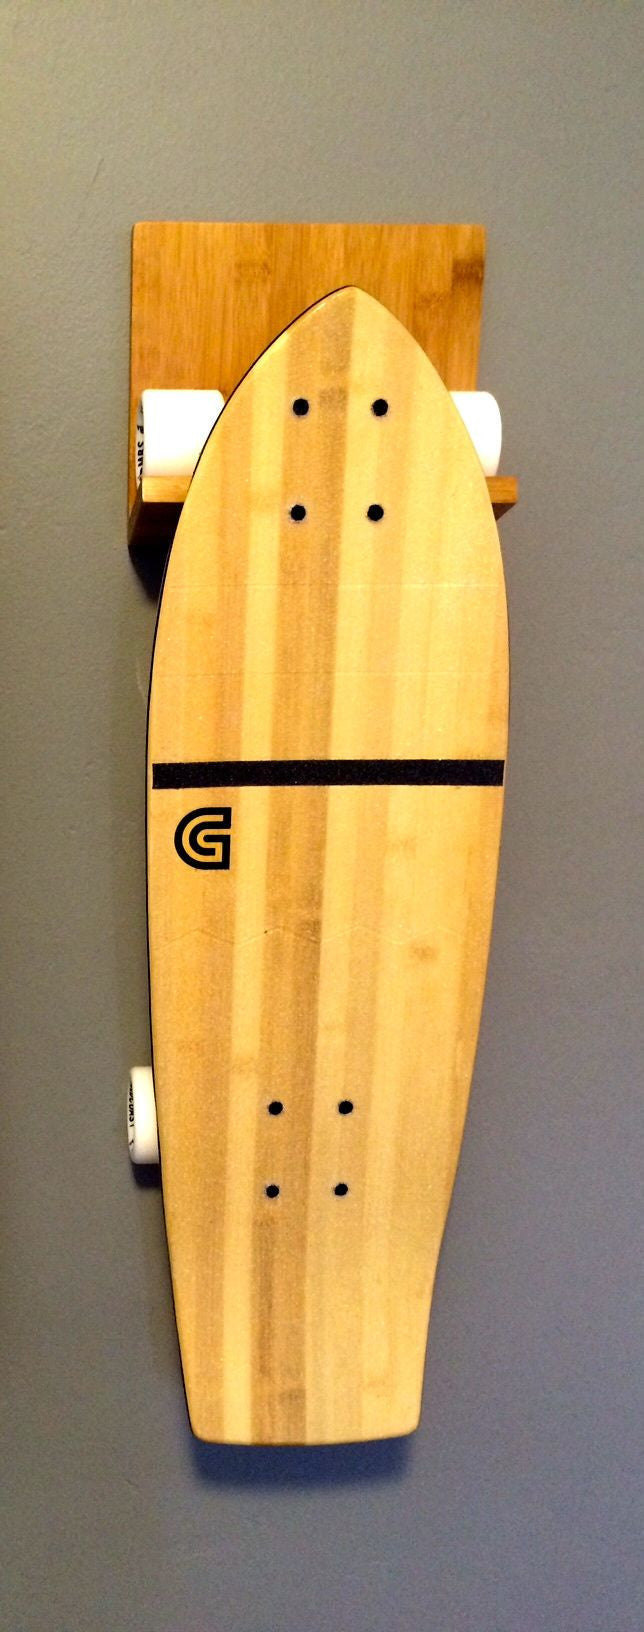 Skateboard Rack Australia Skateboard Mount Skateboard Deck Display ...